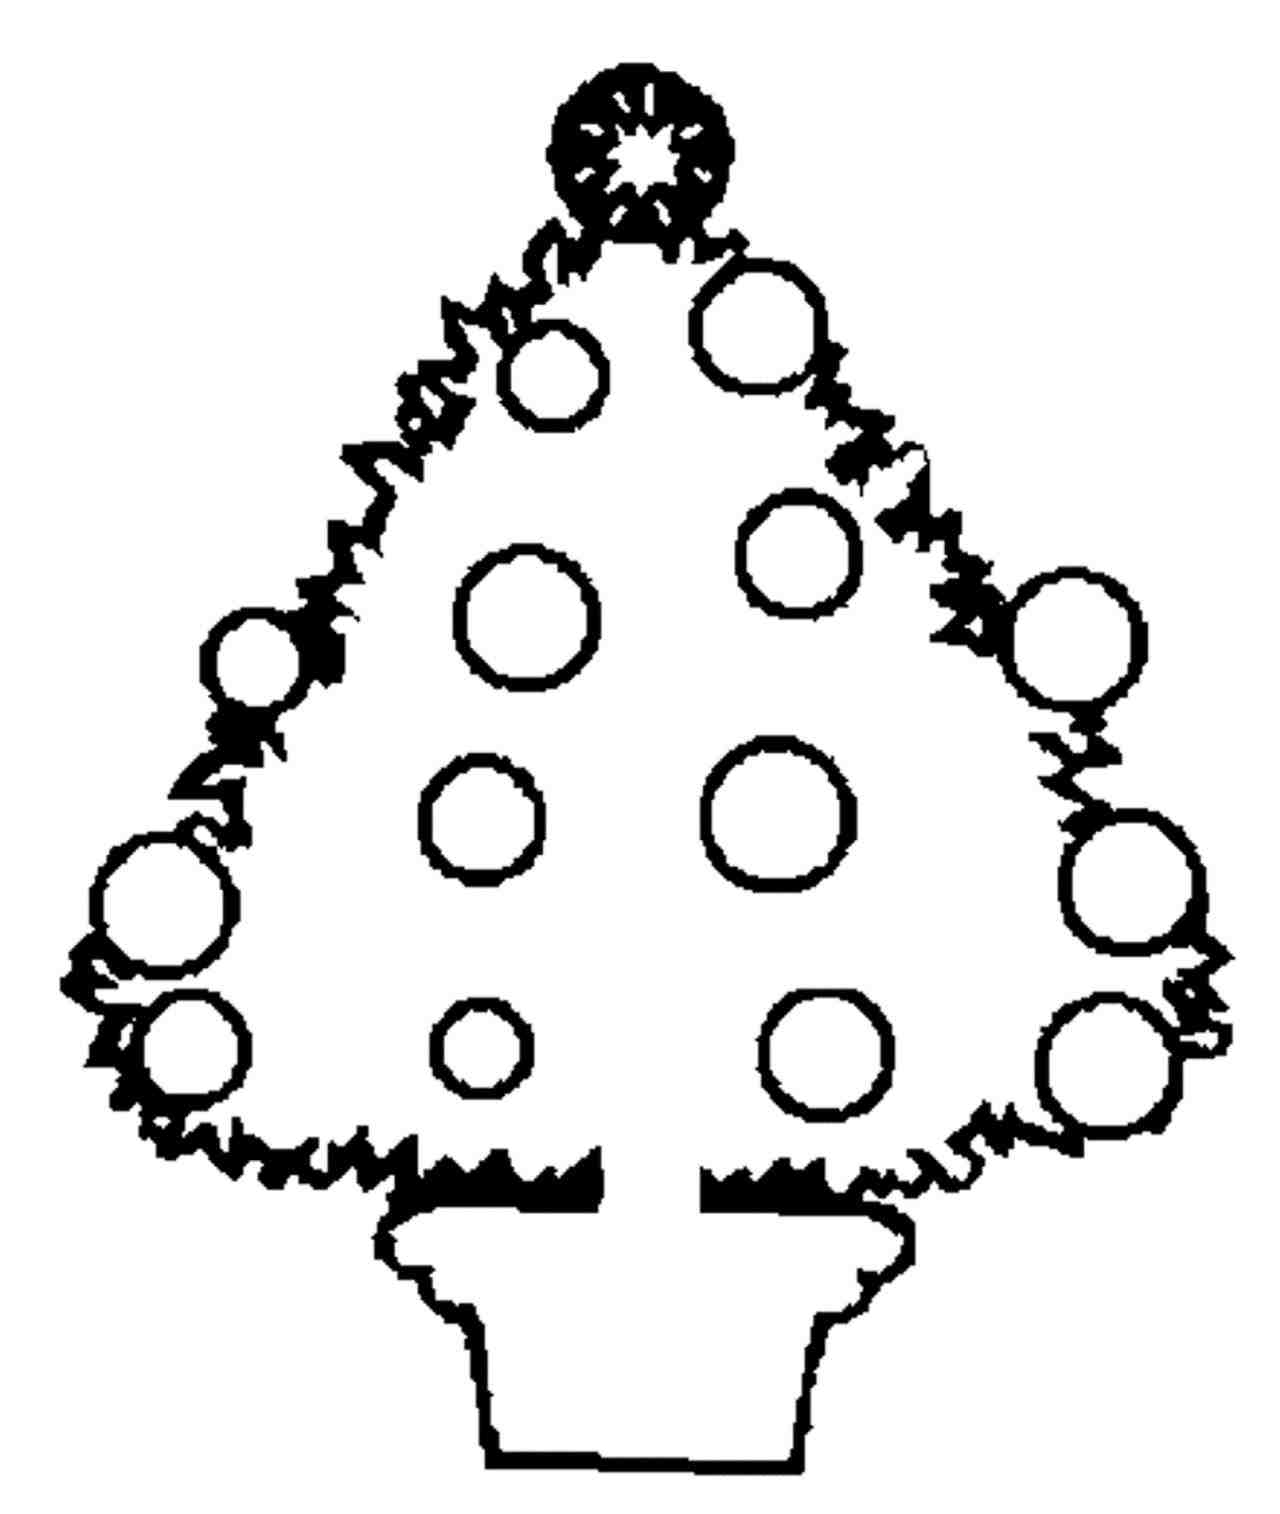 1280x1514 Blank Christmas Tree Coloring Page Cheminee.website